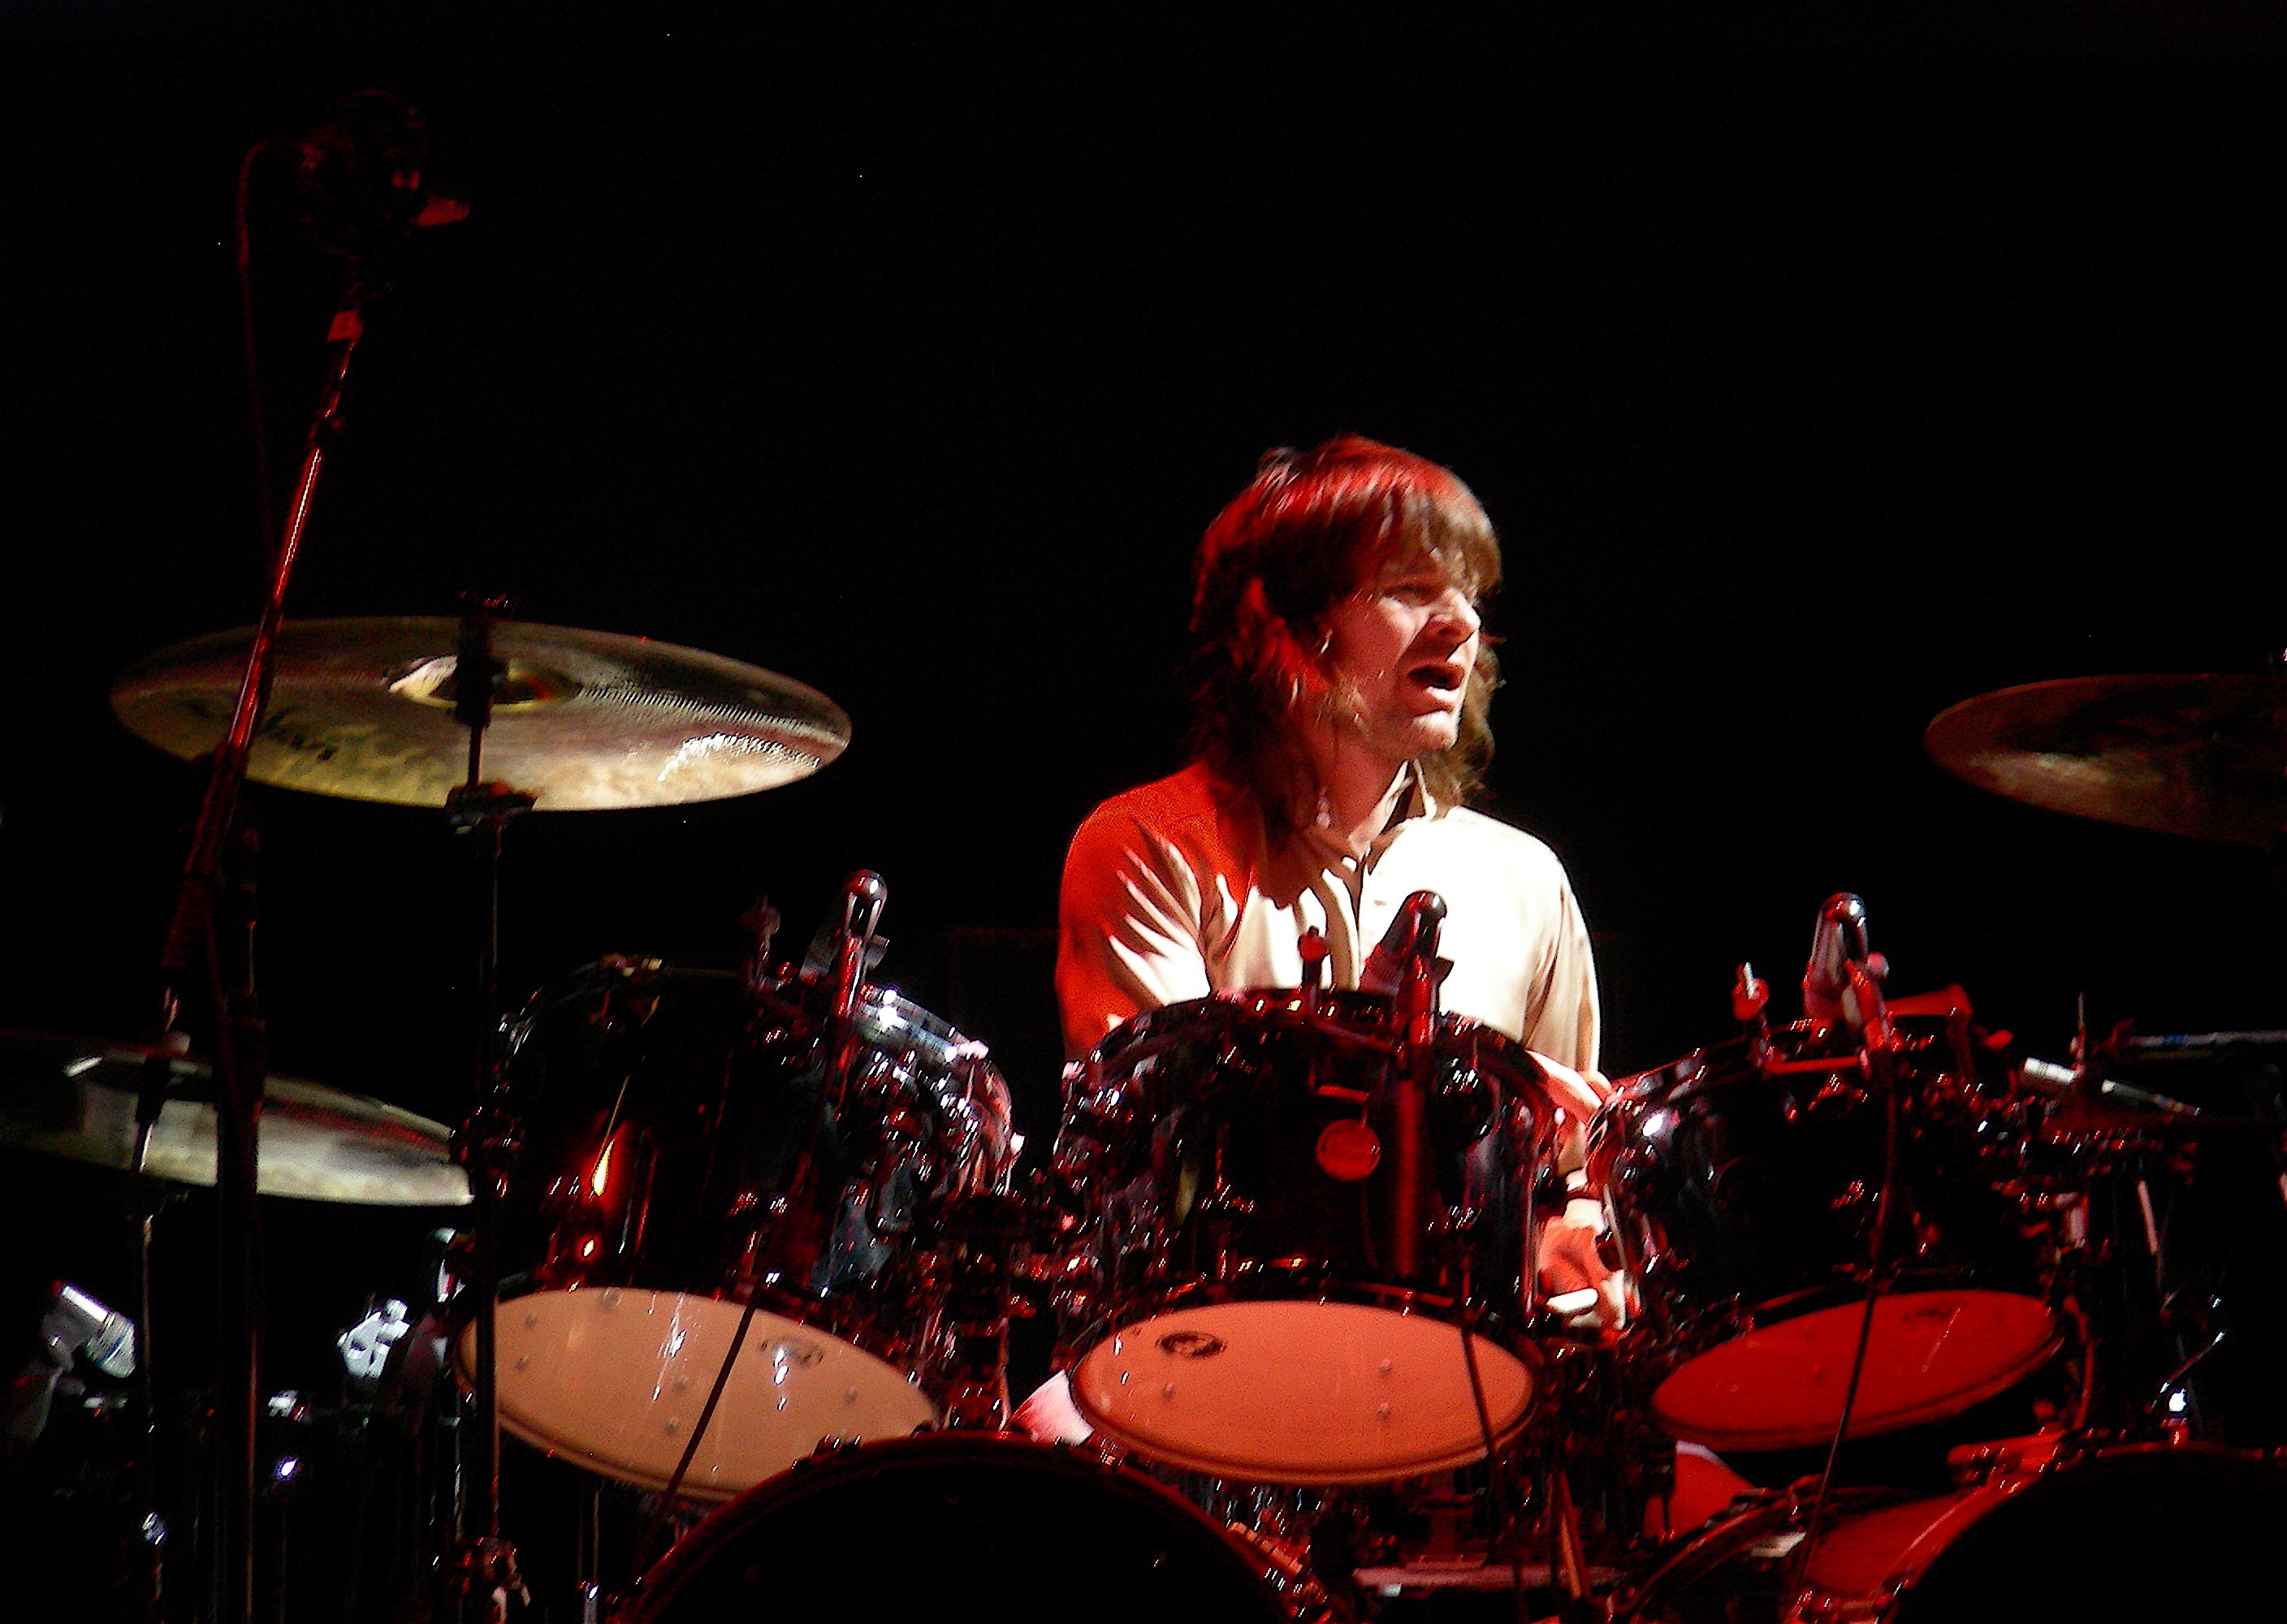 Zak Starkey - Wikipedia